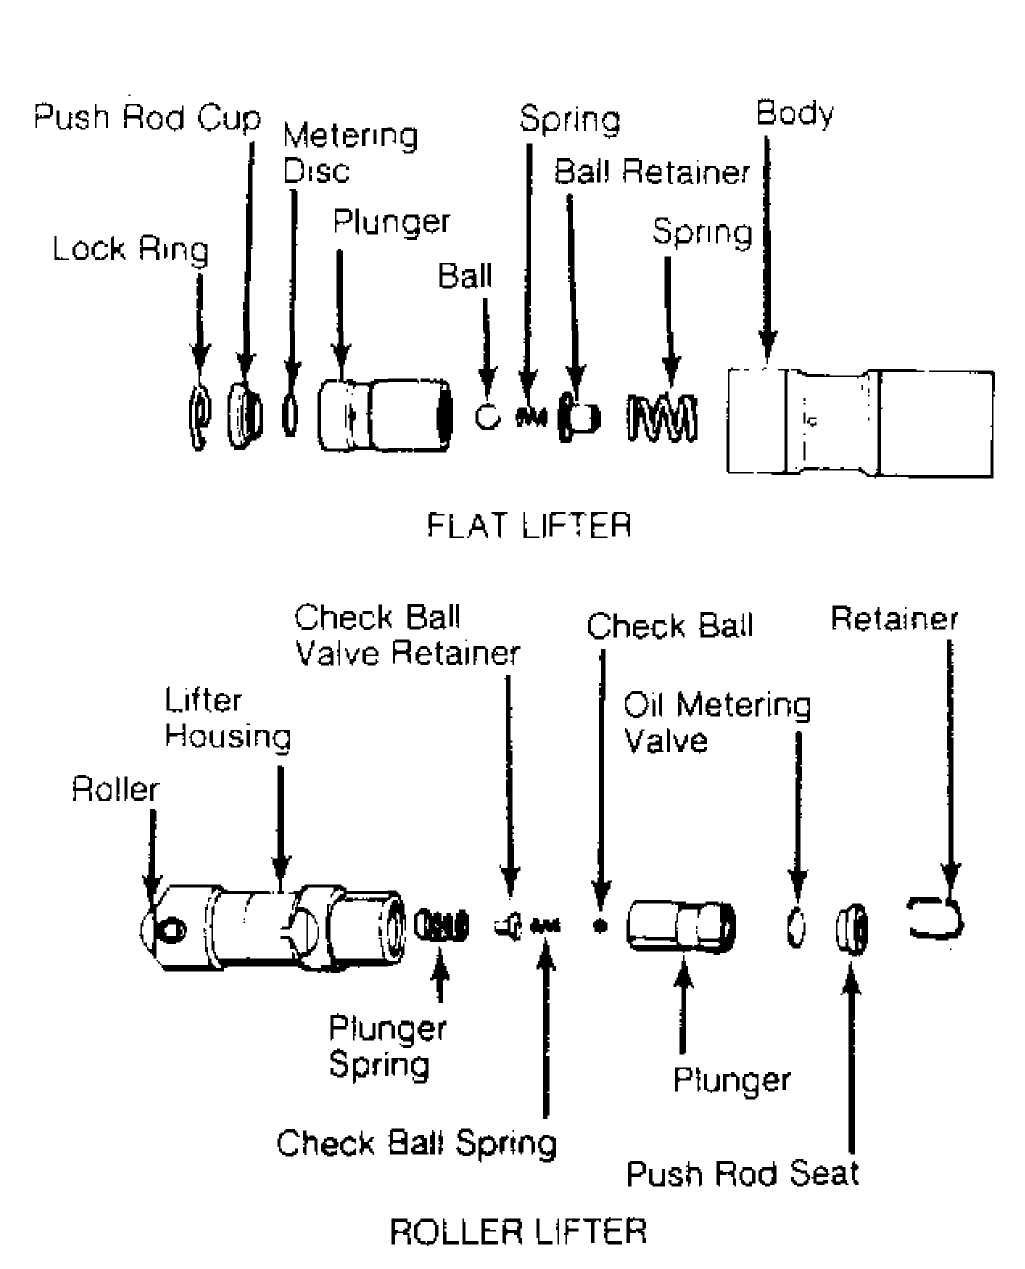 Engine Overhaul Procedures General Information 1993 Jeep Liberty Diagram Windshield Sprayer Some Applications Require Intake Manifold Or Lifter Cover Removal Remove Retainer Plate If Used To Lifters Use A Hydraulic